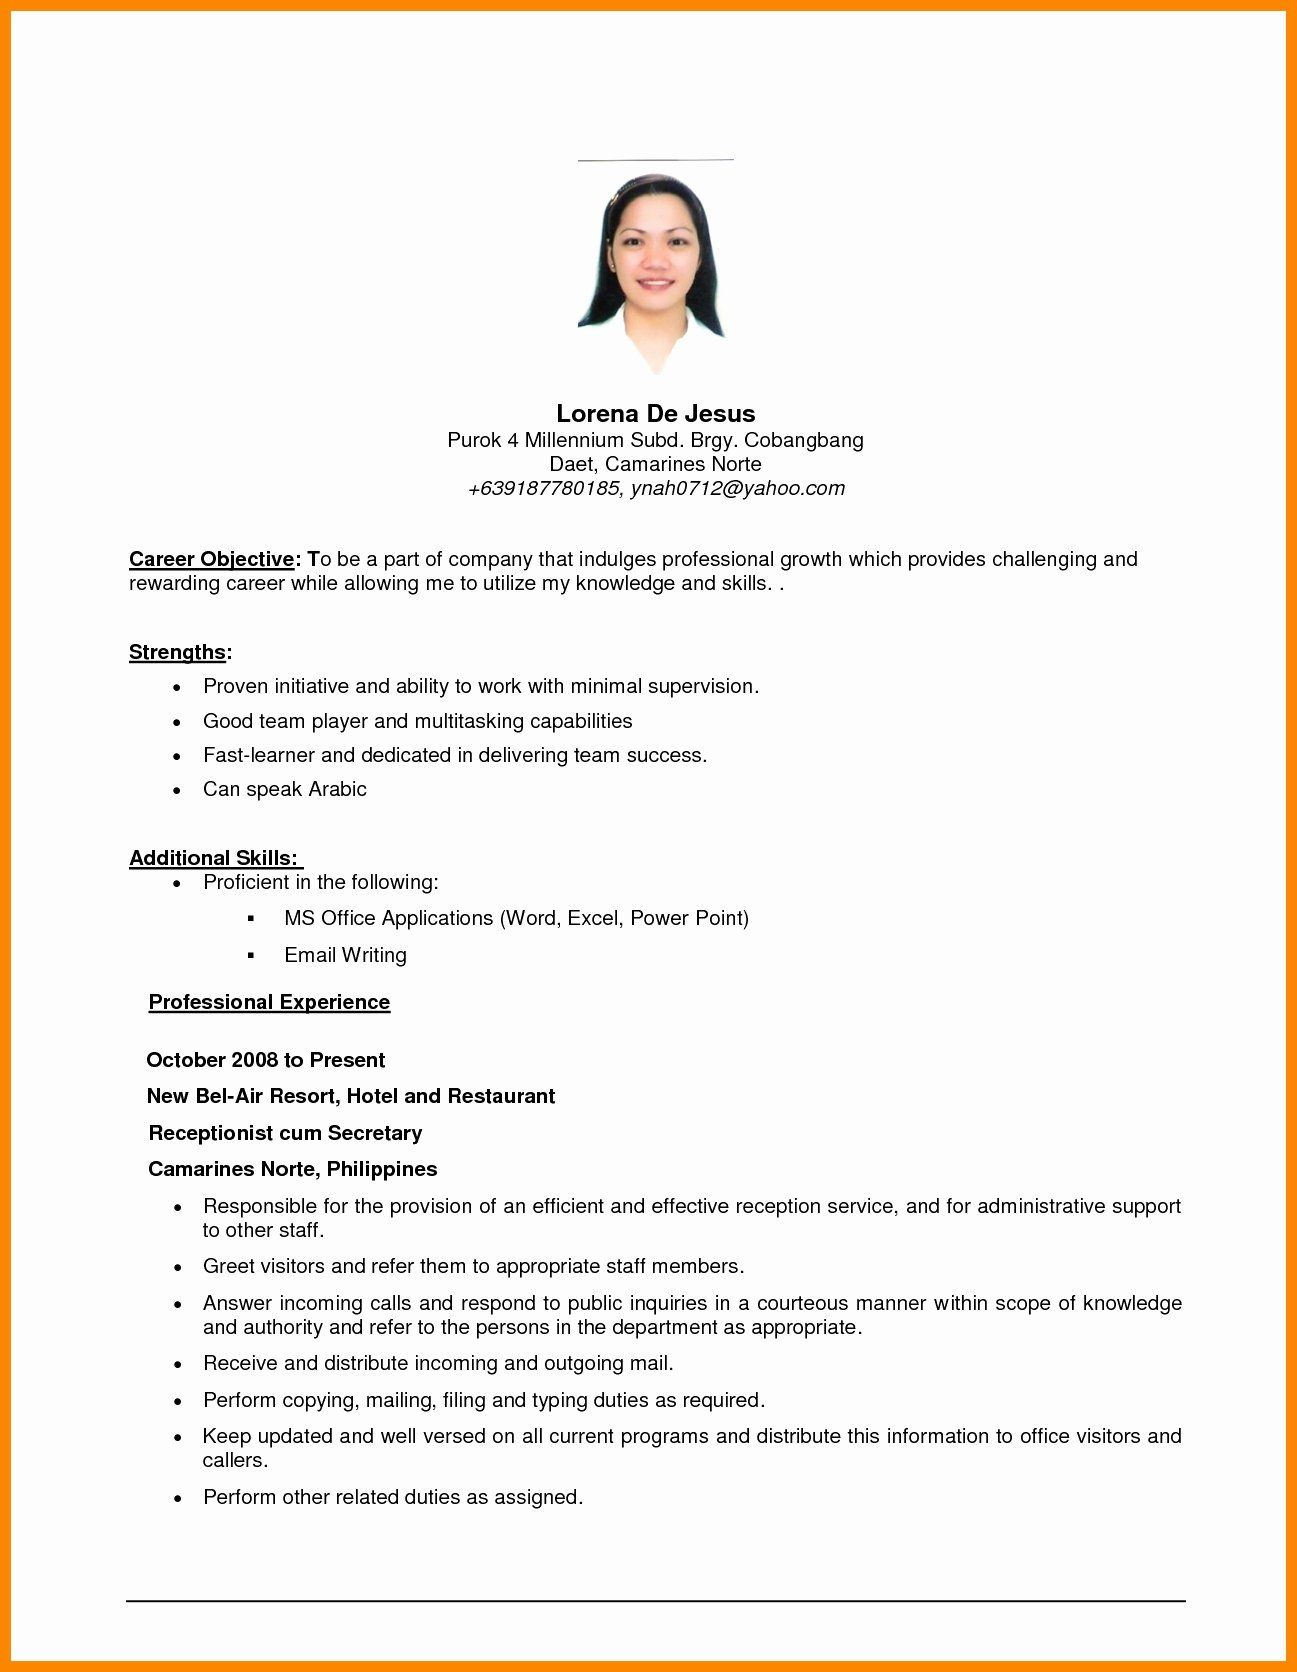 generic objective for resume inspirational general examples in job sample basic ideas psw Resume Basic Resume Objective Ideas